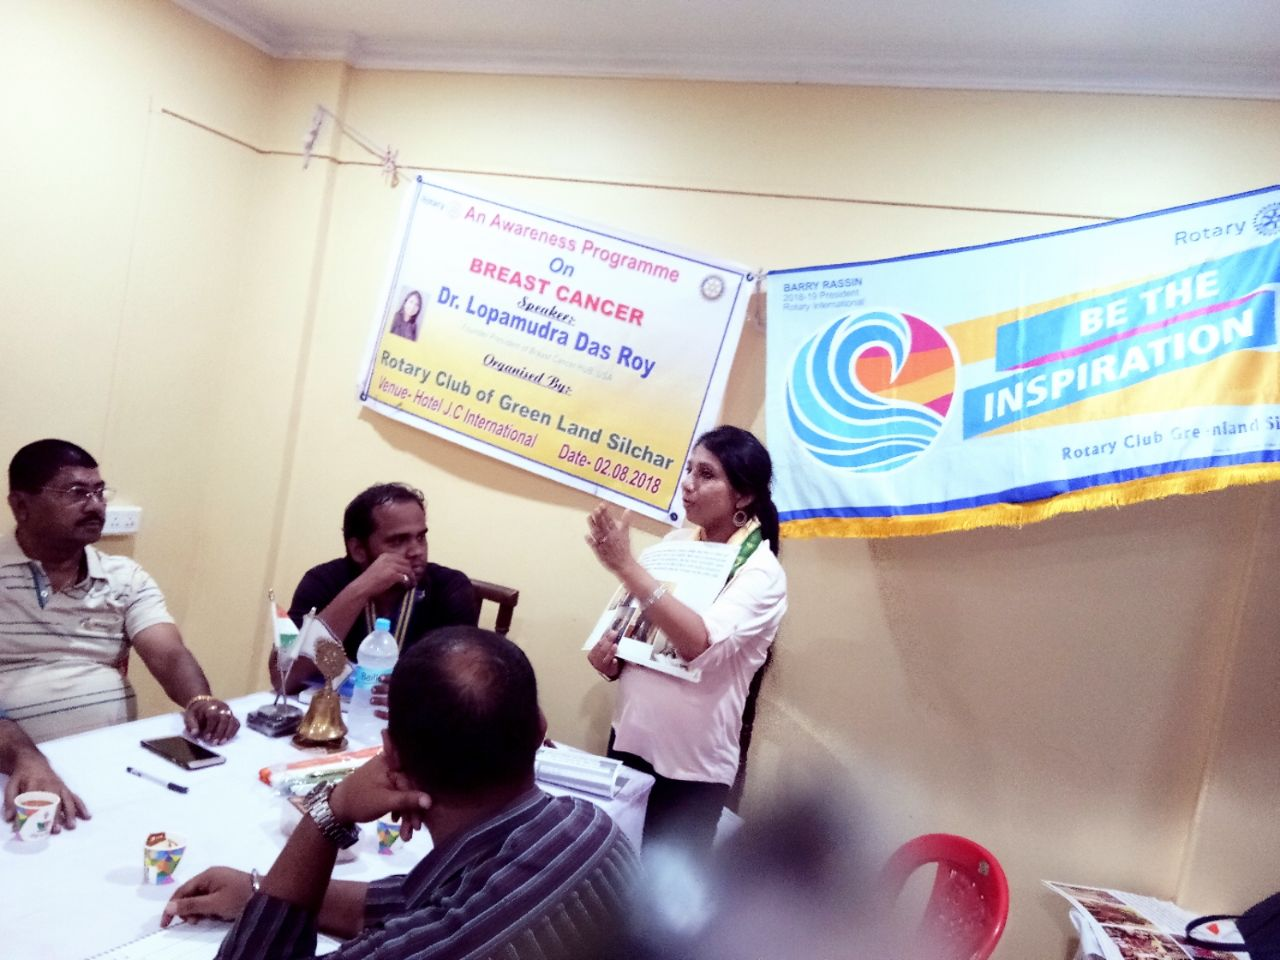 The session went on very well, with audience very receptive and many interested to take the messages forward. Thanks to Mr. Sandip Singh Walia who came forward after the session and invited me for an event in the Sikh community on 14th August. Sincerely thankful to Ms Satakshi Bhattacharjee and Mr. Ashim Bhattacharjee for supporting the cause!